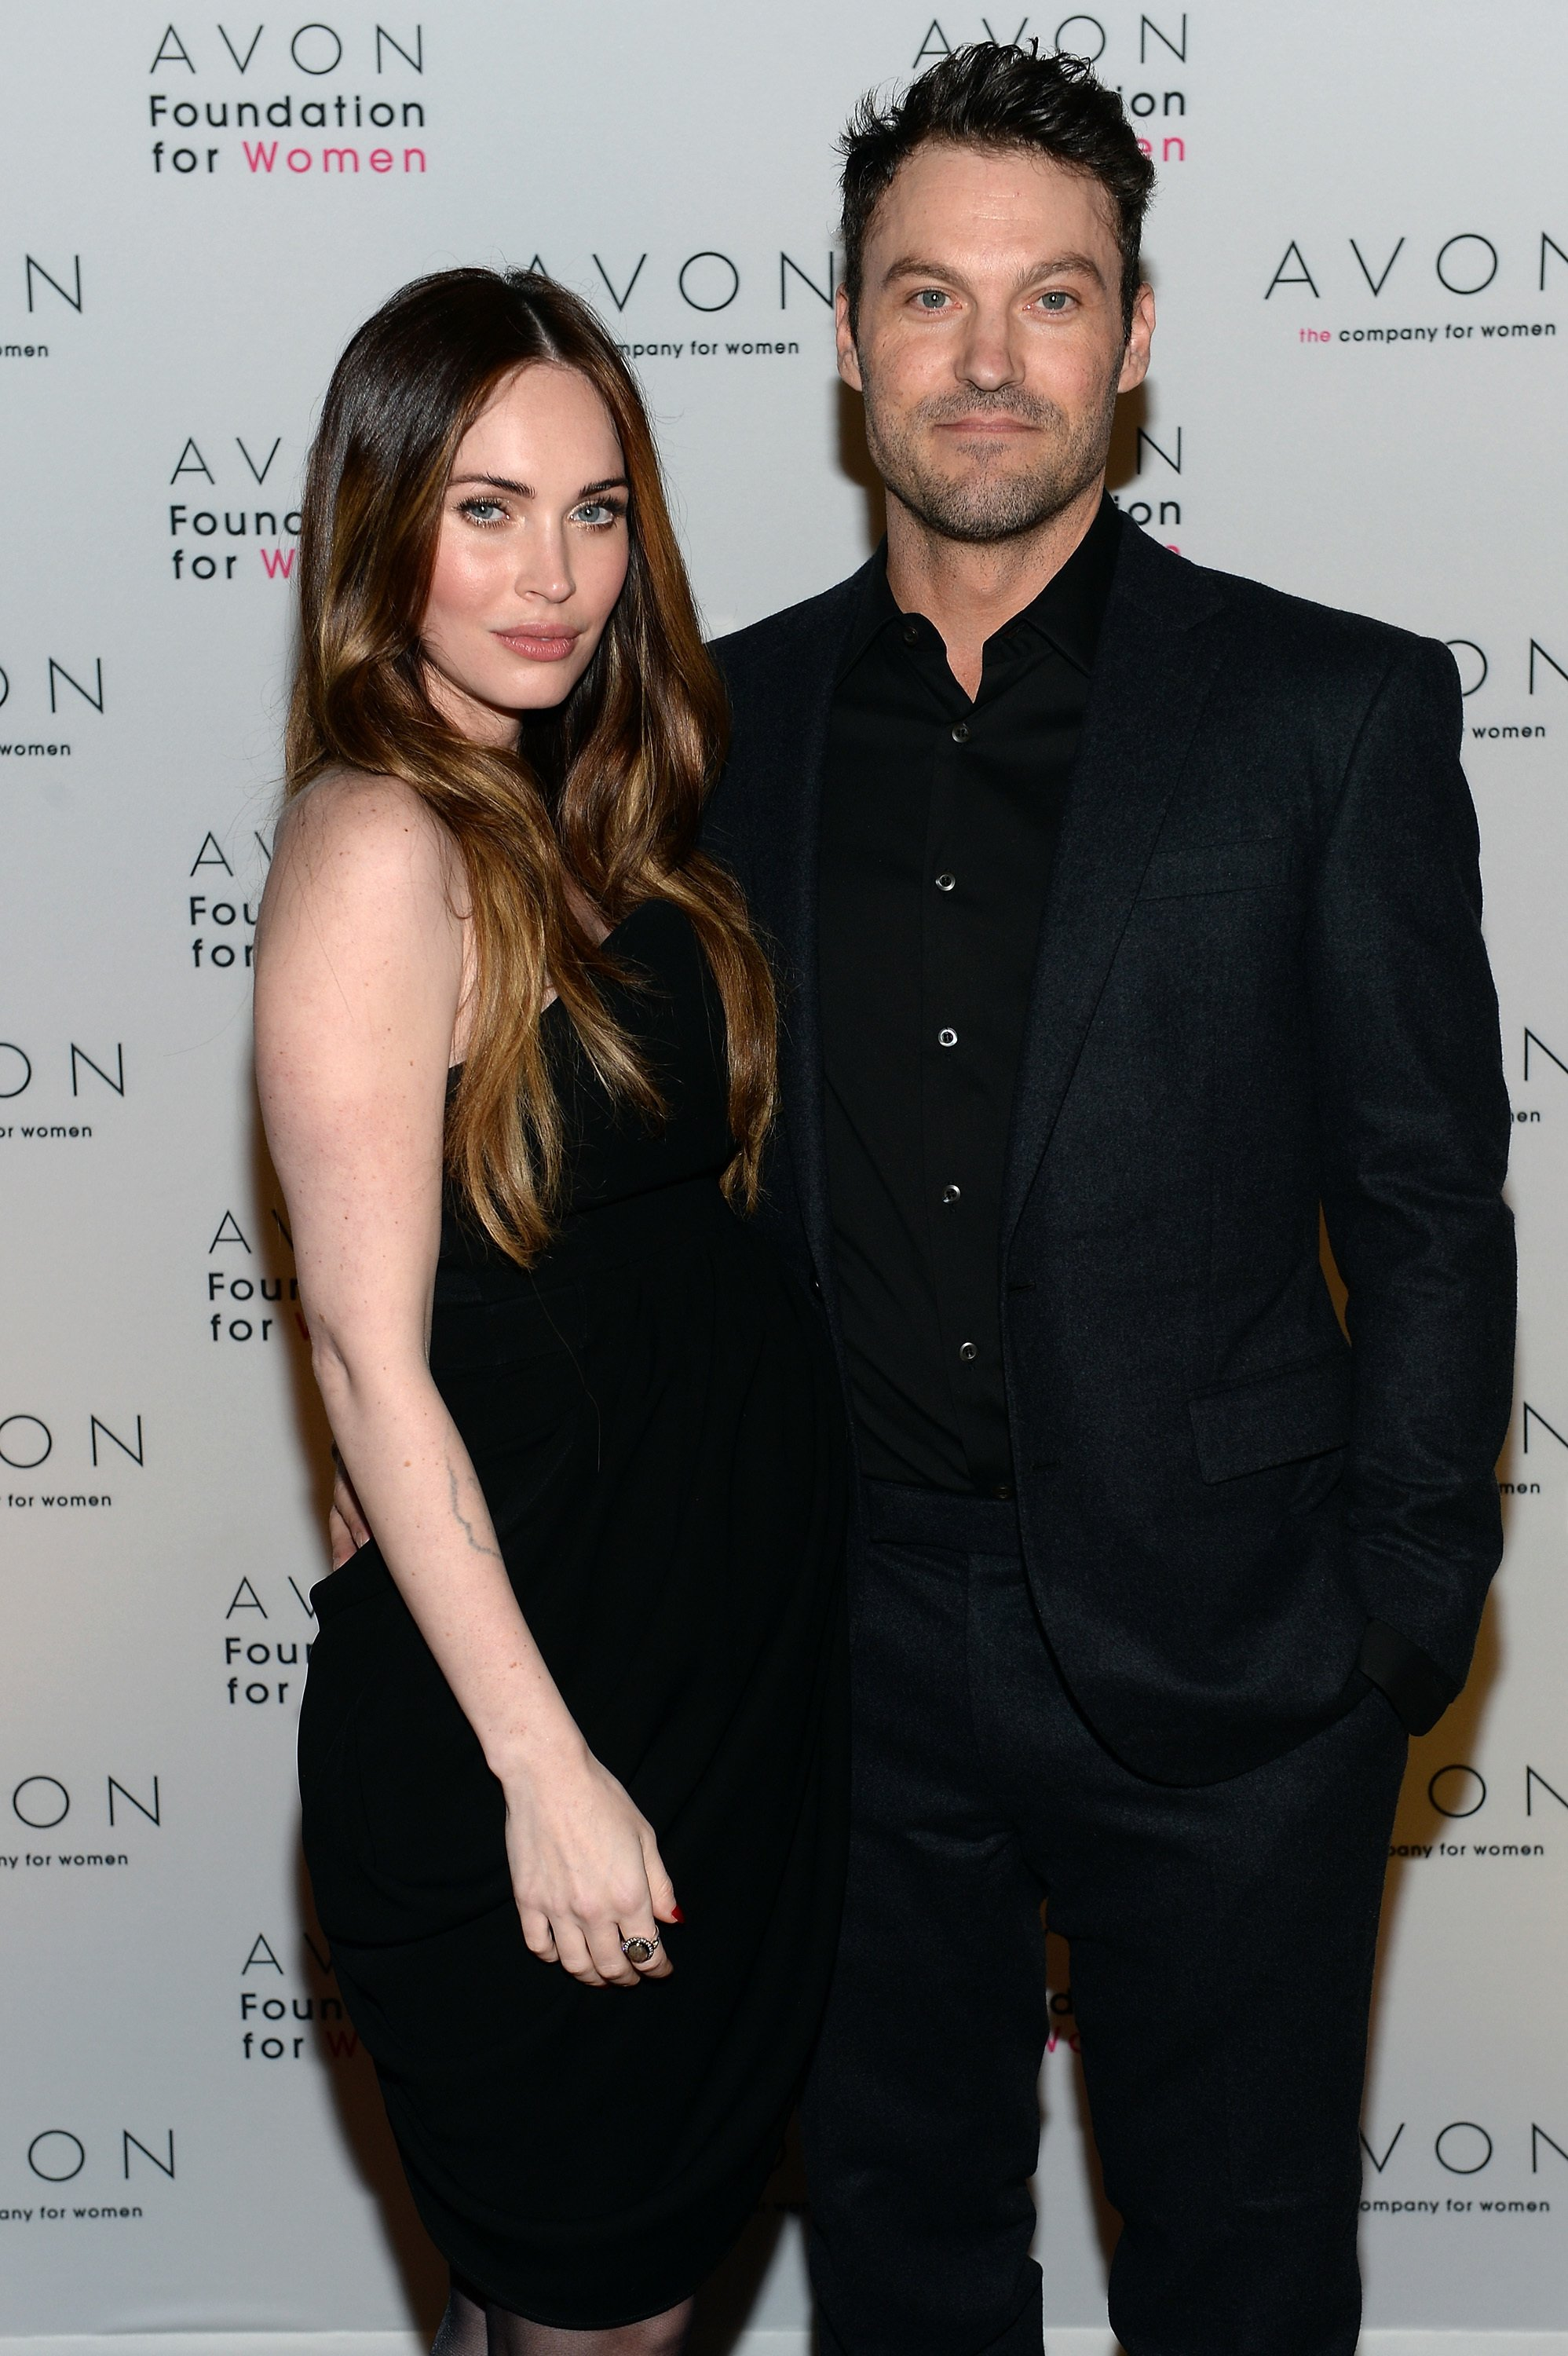 Megan Fox and Brian Austin Green at The Morgan Library & Museum in New York City   Photo: Getty Images